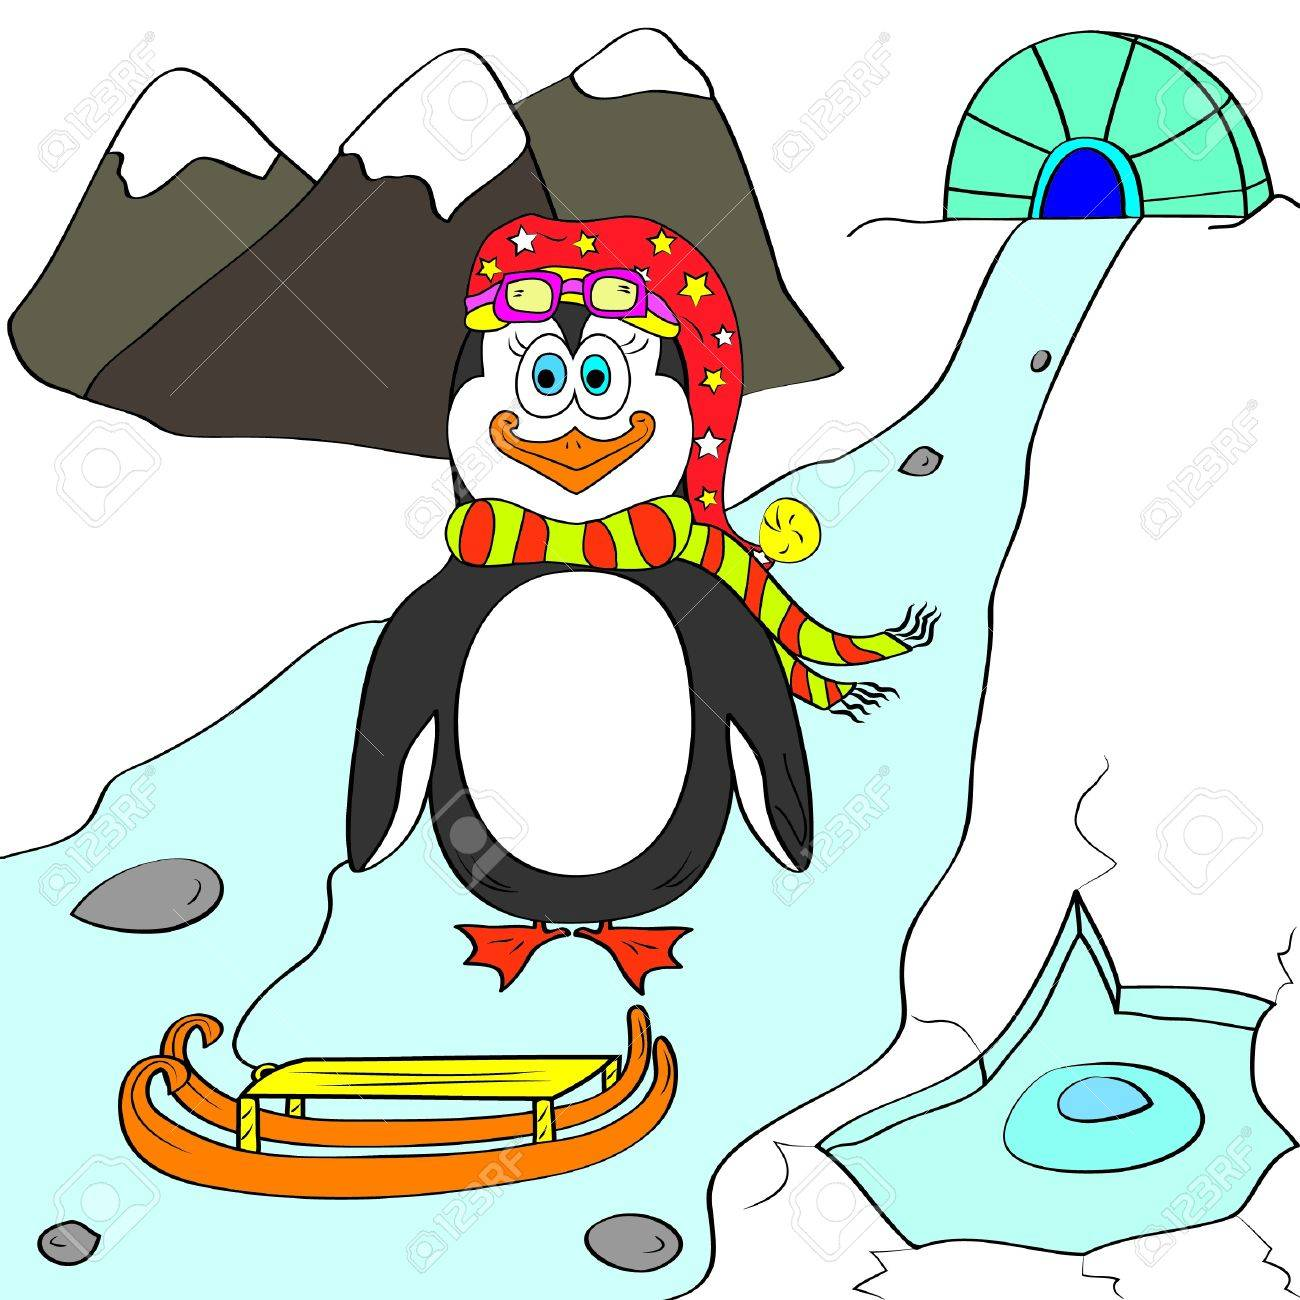 Penguin Color Page Royalty Free Cliparts, Vectors, And Stock ...